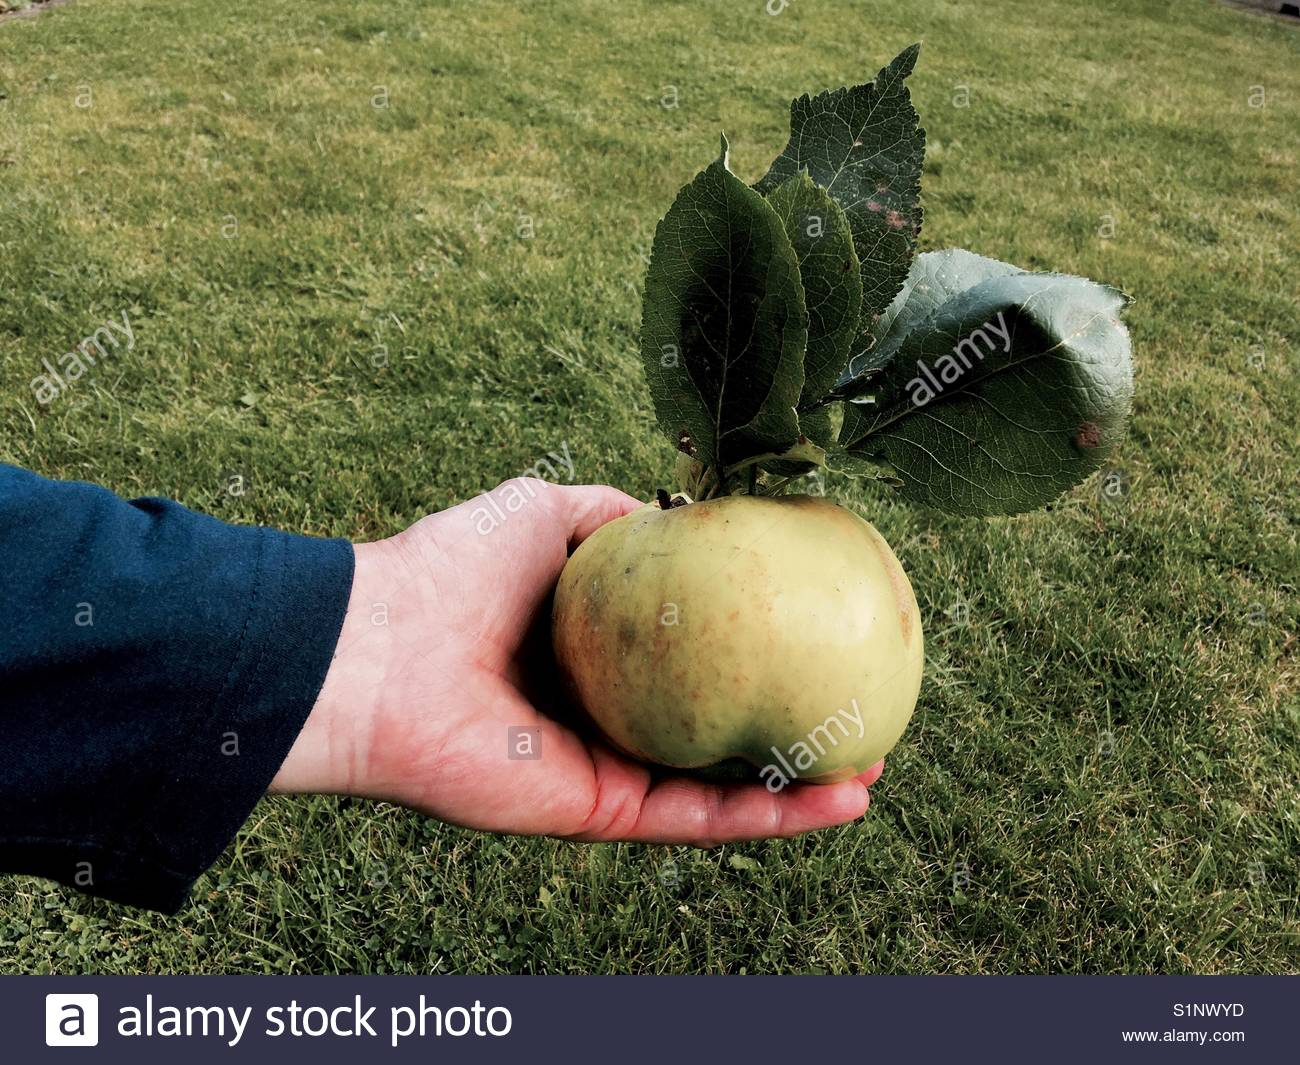 Person holding a large Bramley apple complete with leaves - Stock Image